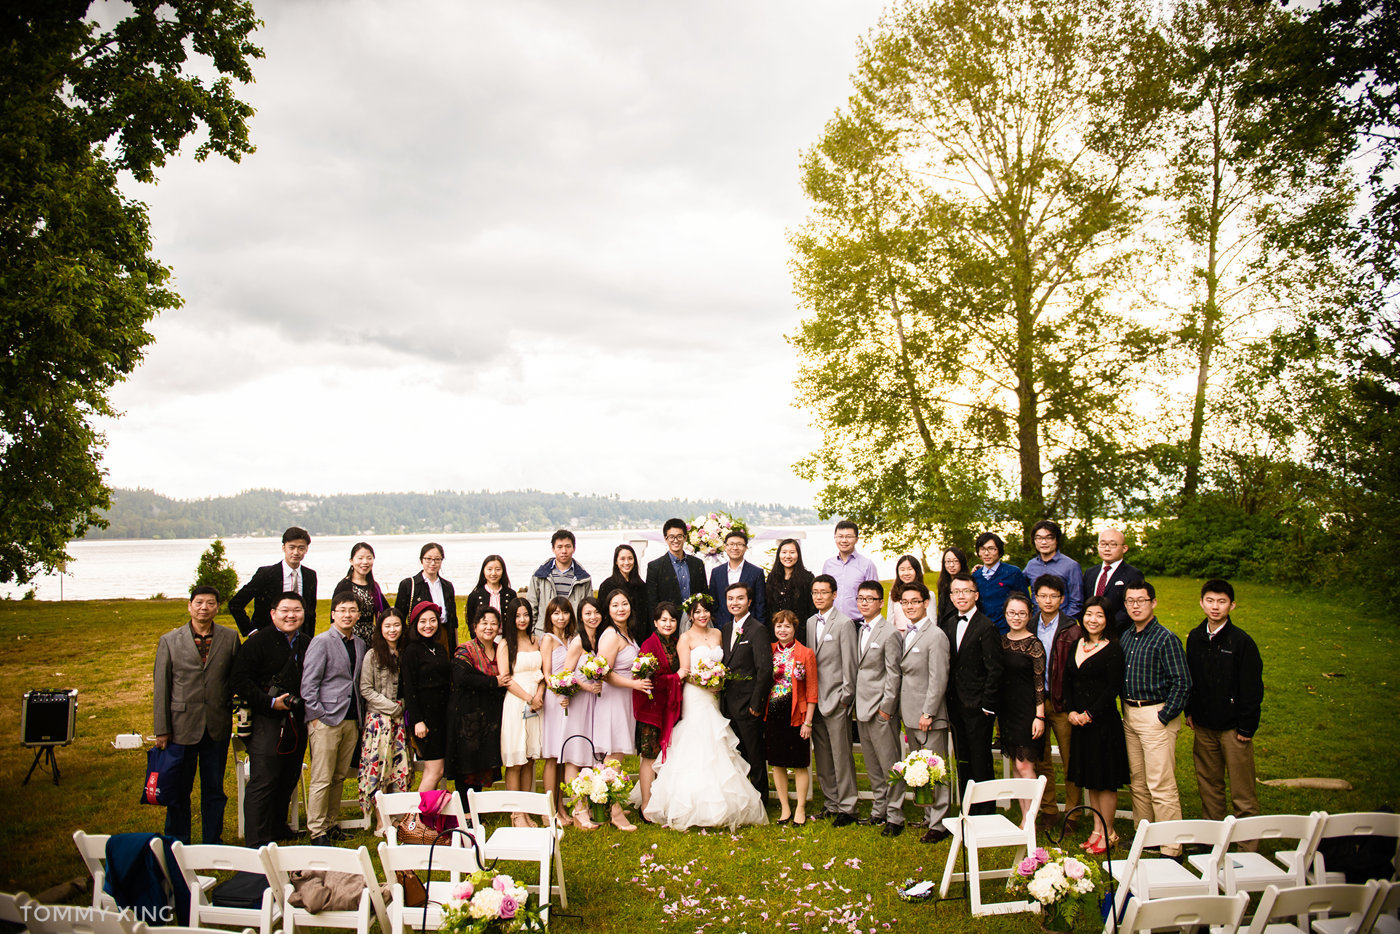 Seattle Wedding and pre wedding Los Angeles Tommy Xing Photography 西雅图洛杉矶旧金山婚礼婚纱照摄影师 104.jpg